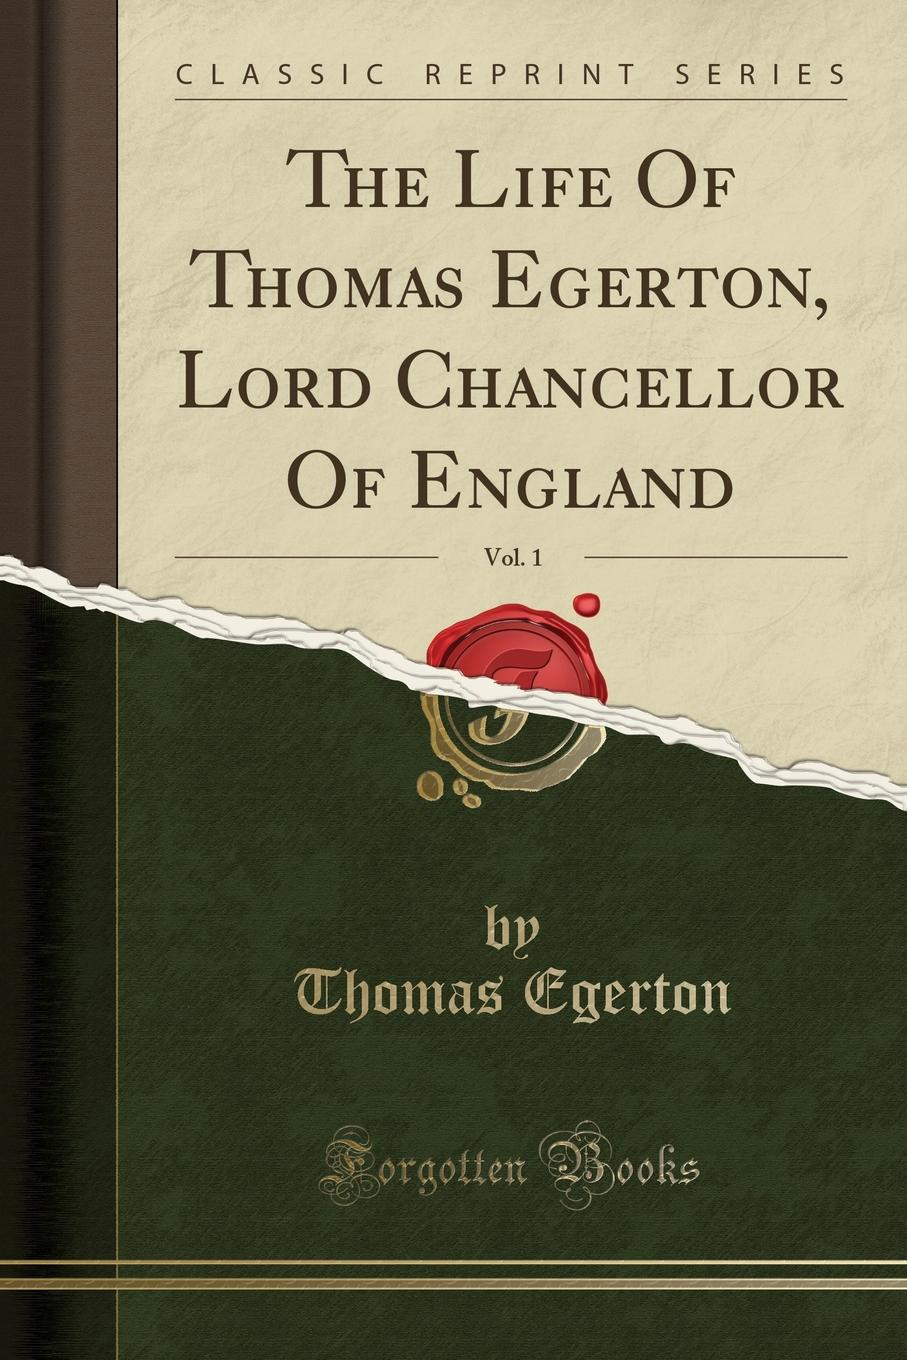 Thomas Egerton The Life Of Thomas Egerton, Lord Chancellor Of England, Vol. 1 (Classic Reprint) joseph lowe the present state of england